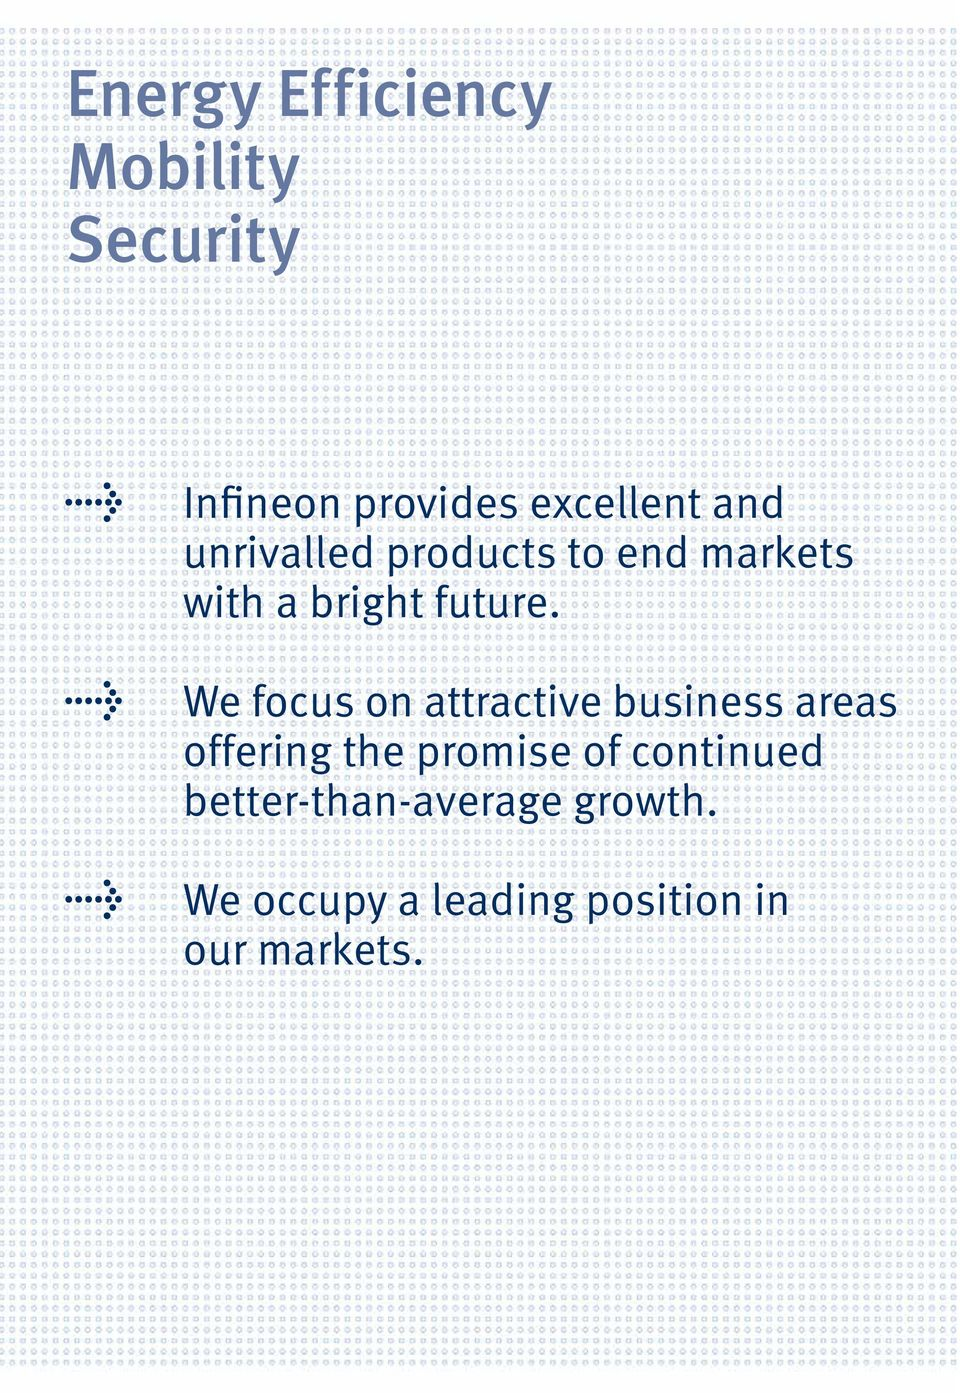 We focus on attractive business areas offering the promise of